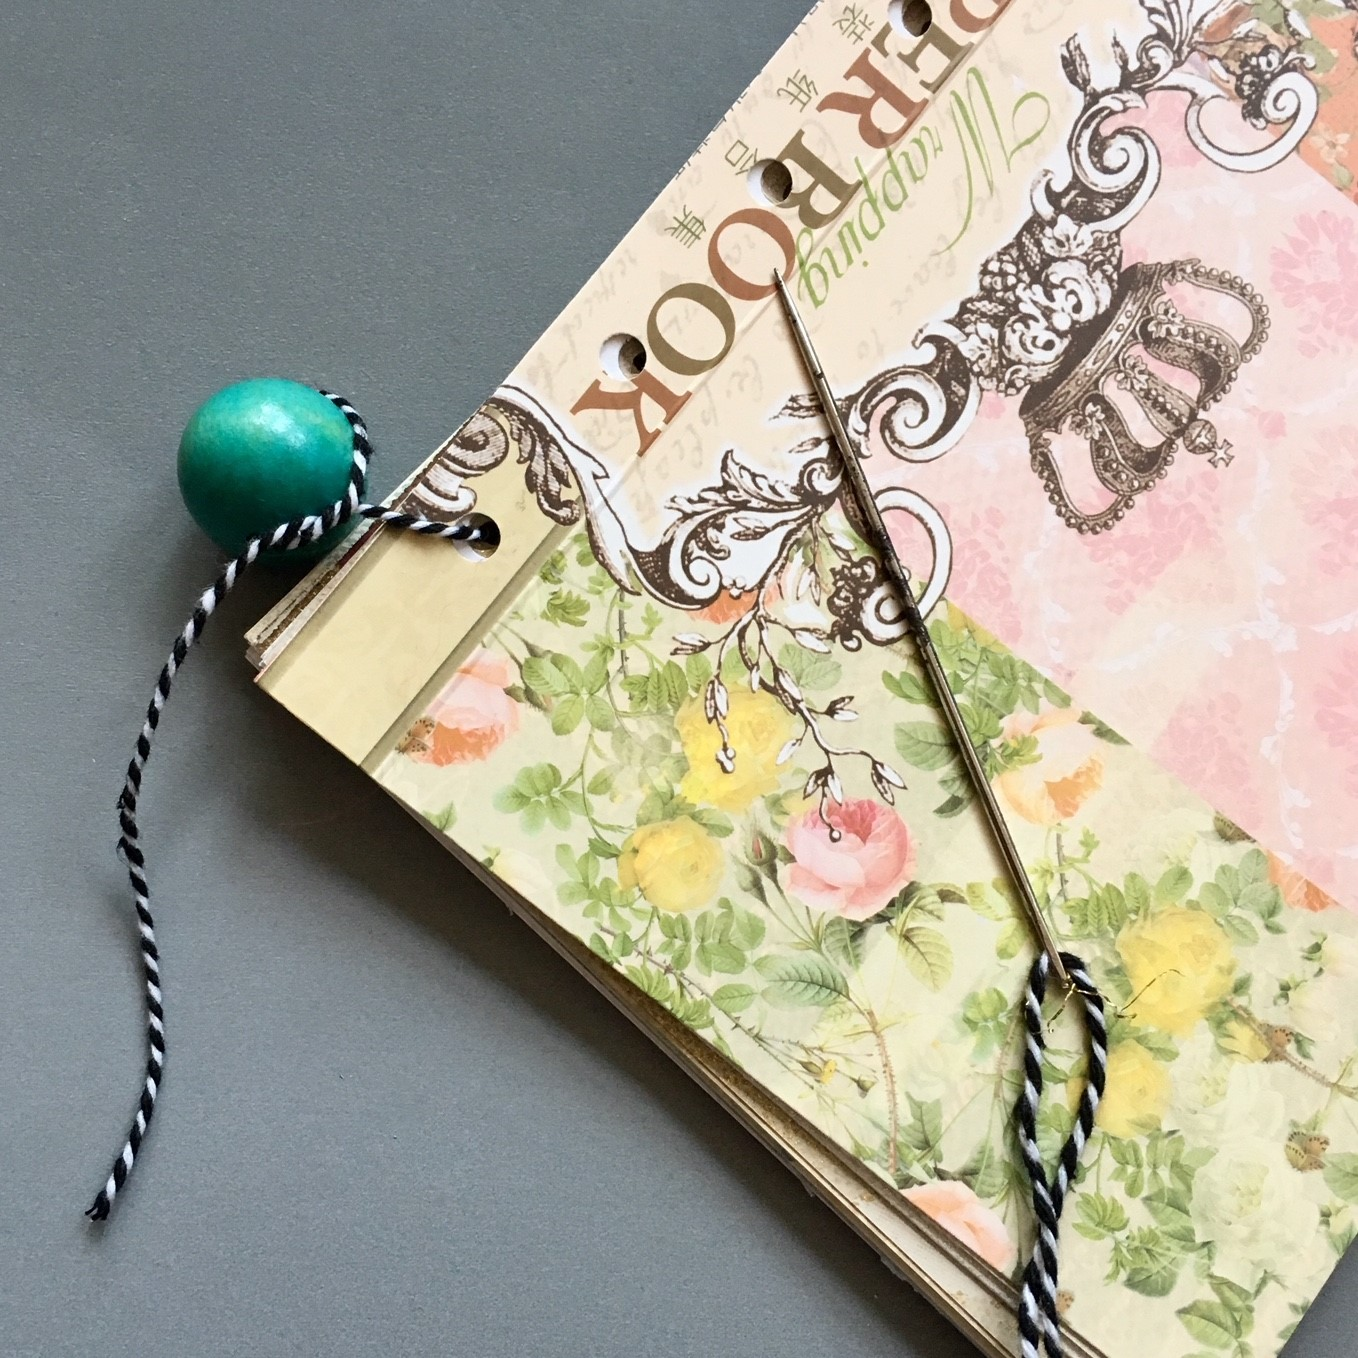 Before starting the bookbinding, I tied a big bead to the end of the cotton thread